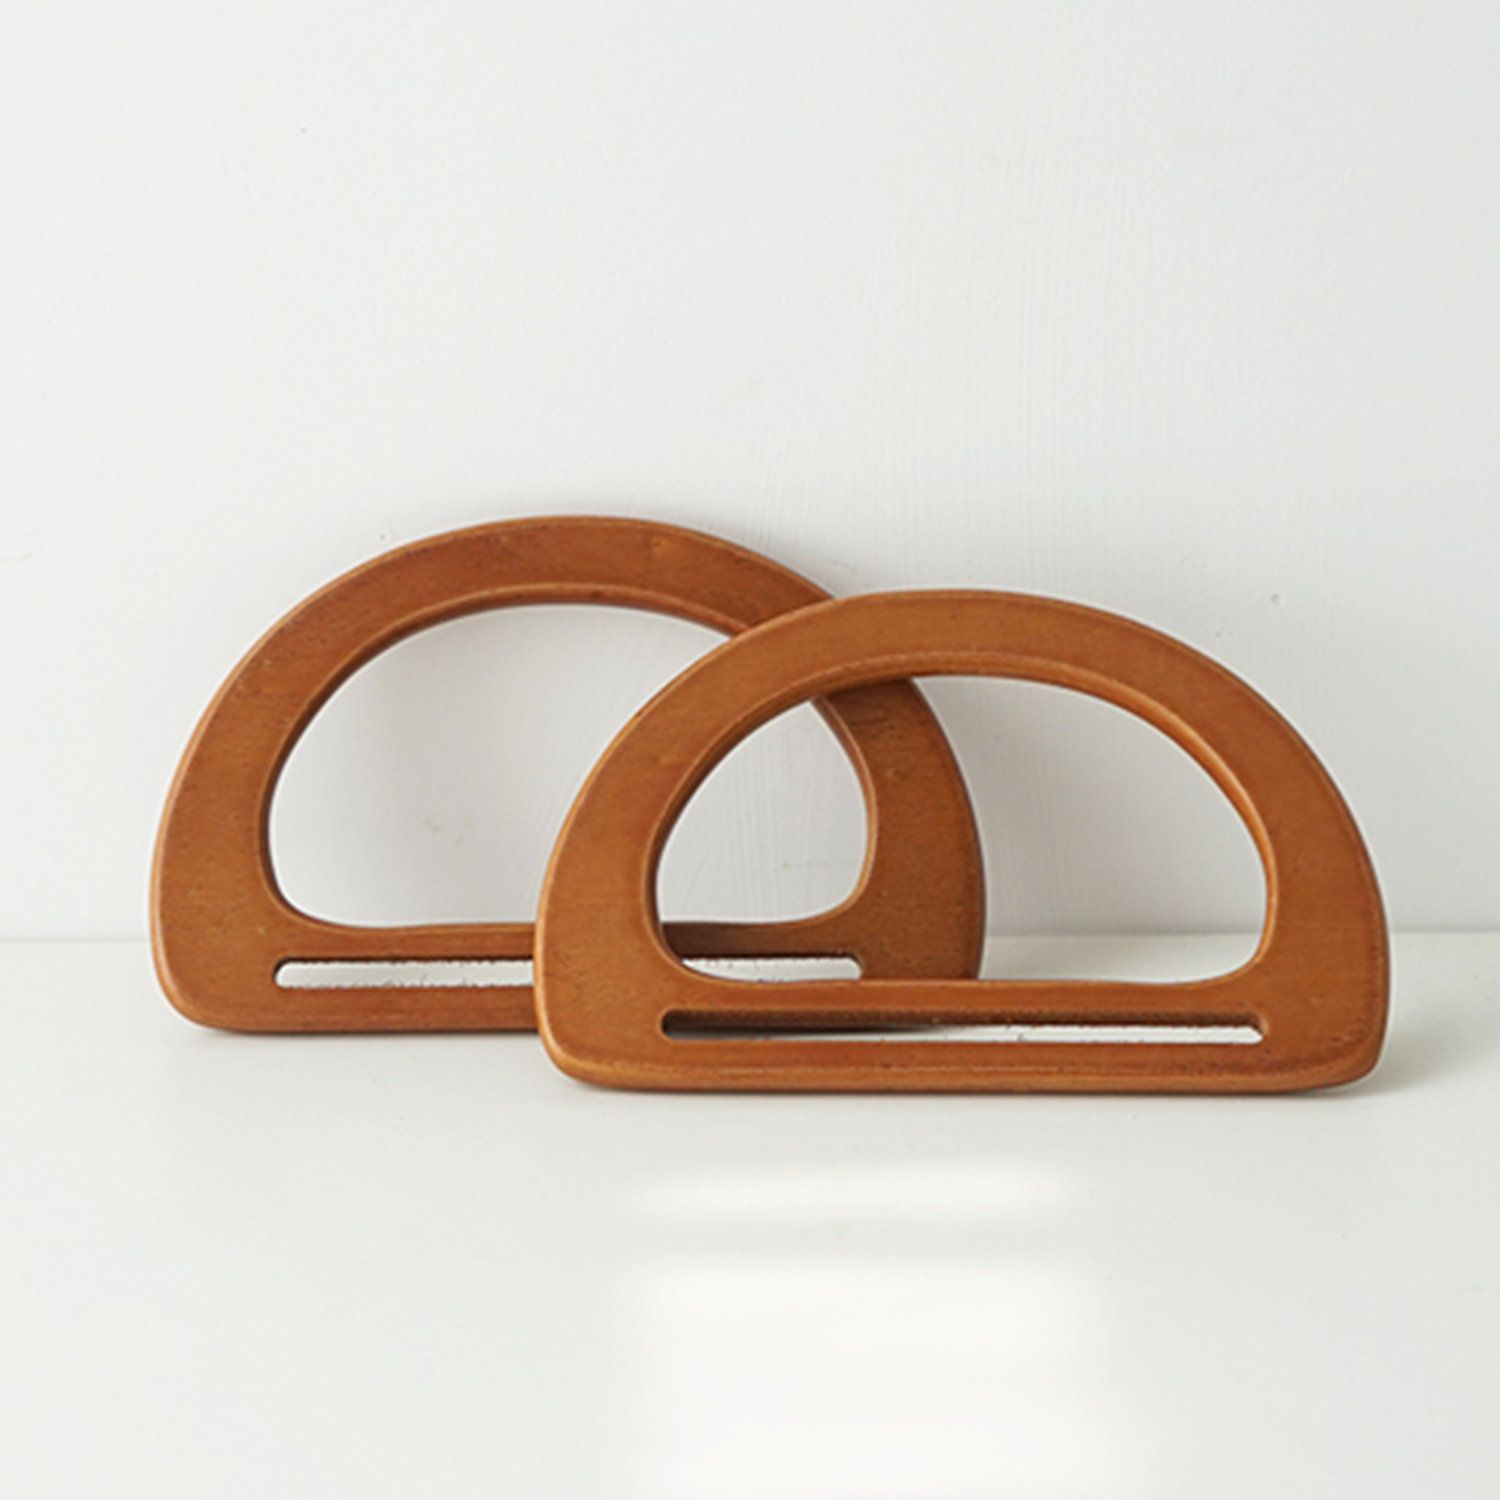 3 Pair Wooden Purse Tote Handbag Handle Replacements Holder for Bag Making